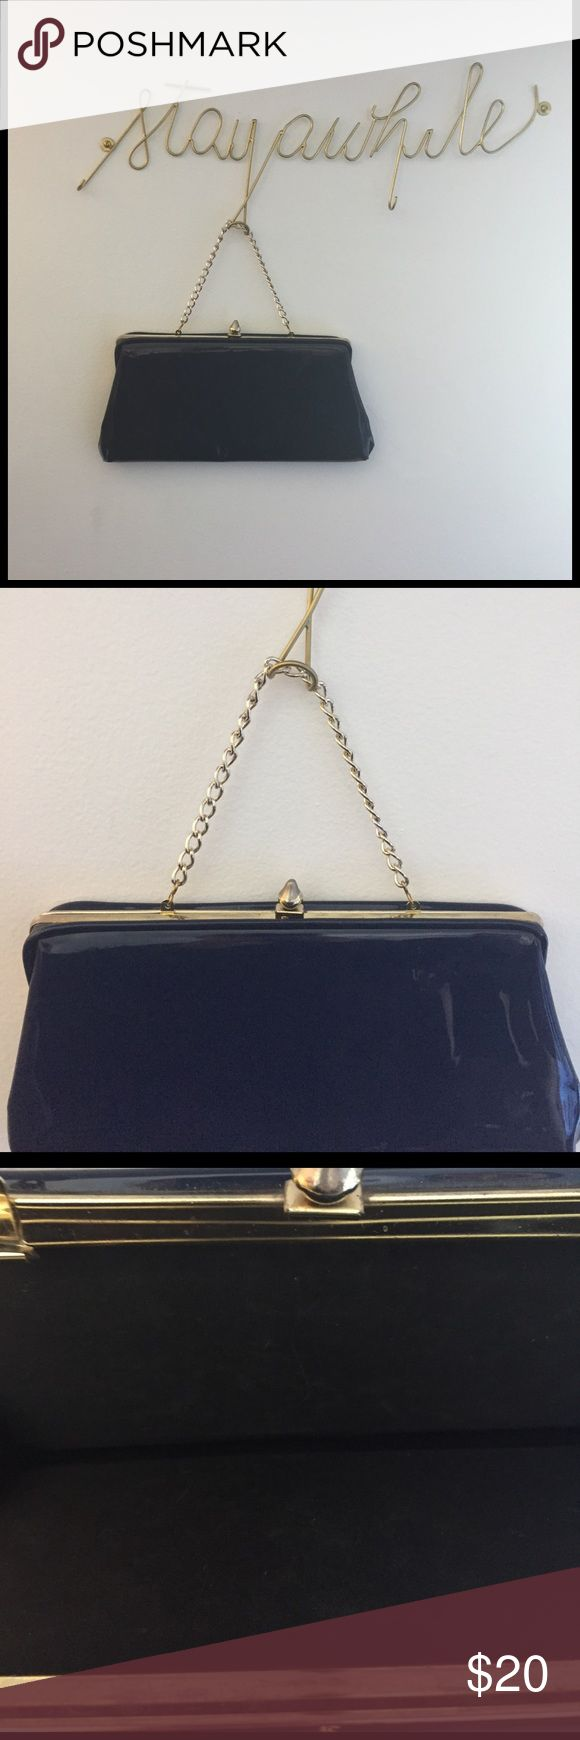 "60s Vintage Navy Clutch bag Such a good find, I bought these bag many years ago in a vintage market. From the 60s Navy with a Gold clasp. The small chain can be placed inside to create a clutch bag, or left to wear....chain 5"" length 11.5"" width 5.5"" Bags Clutches & Wristlets"